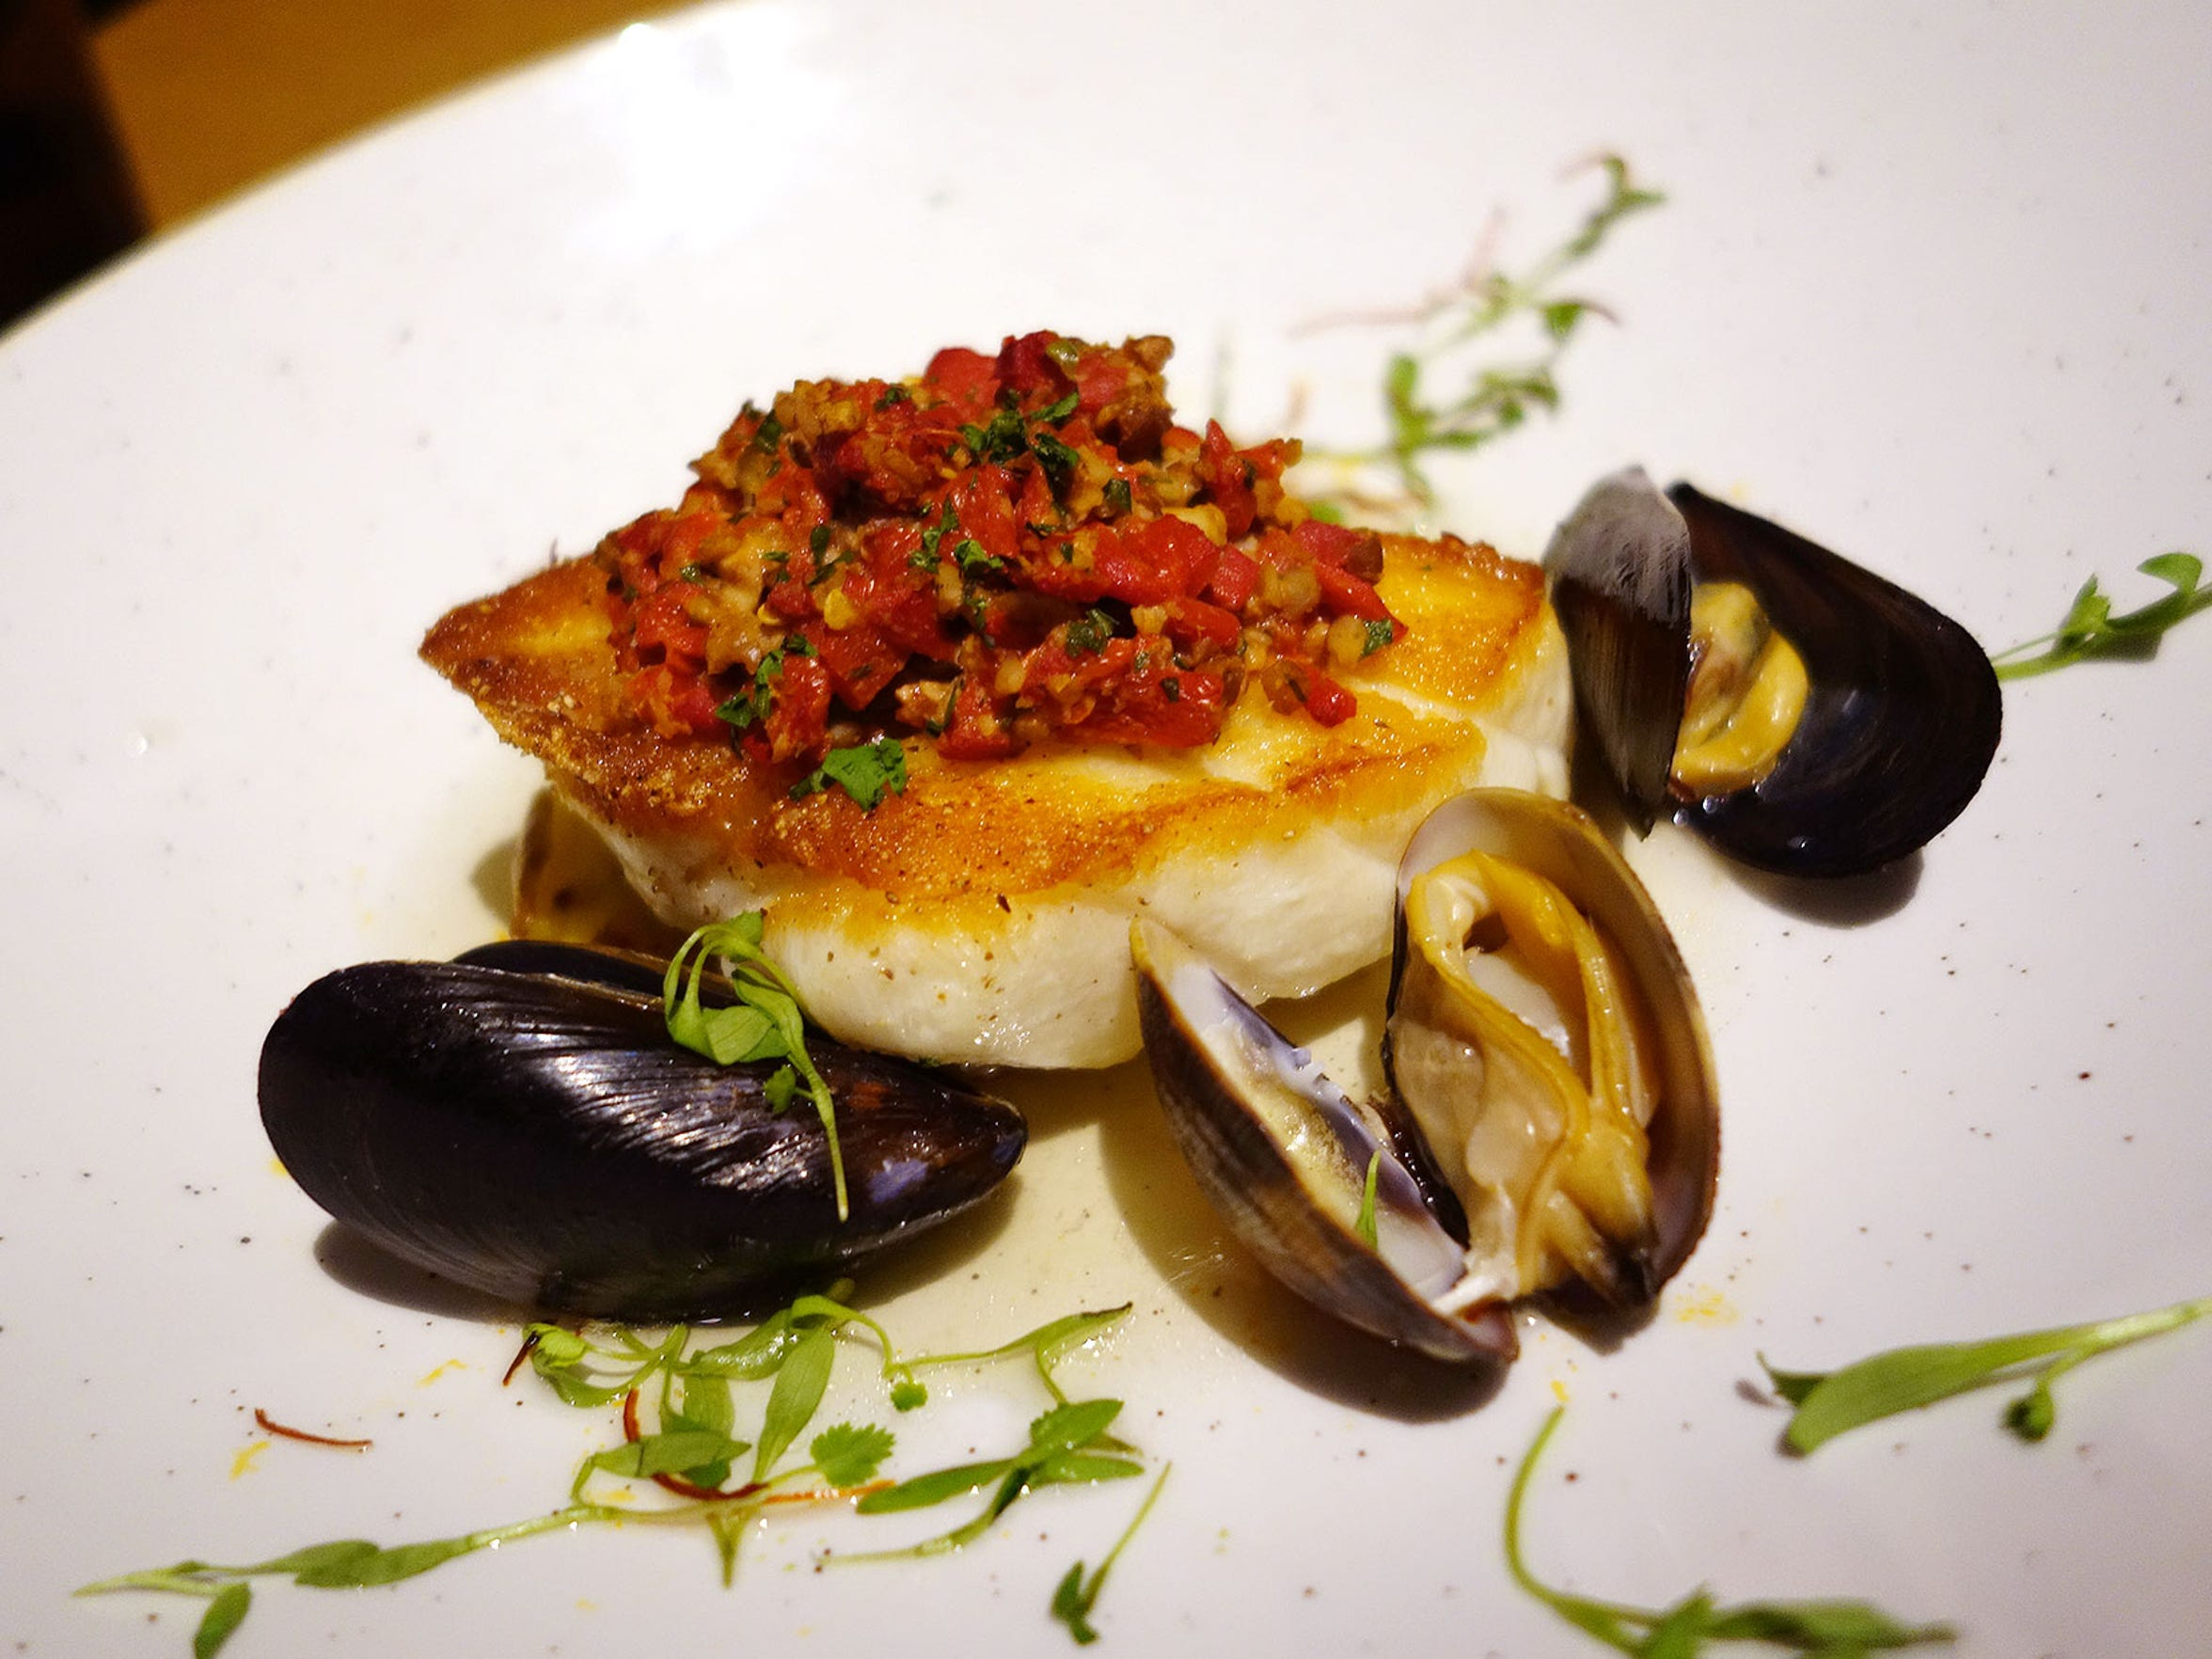 Chilean sea bass with pecan herb crust, mussels, clams